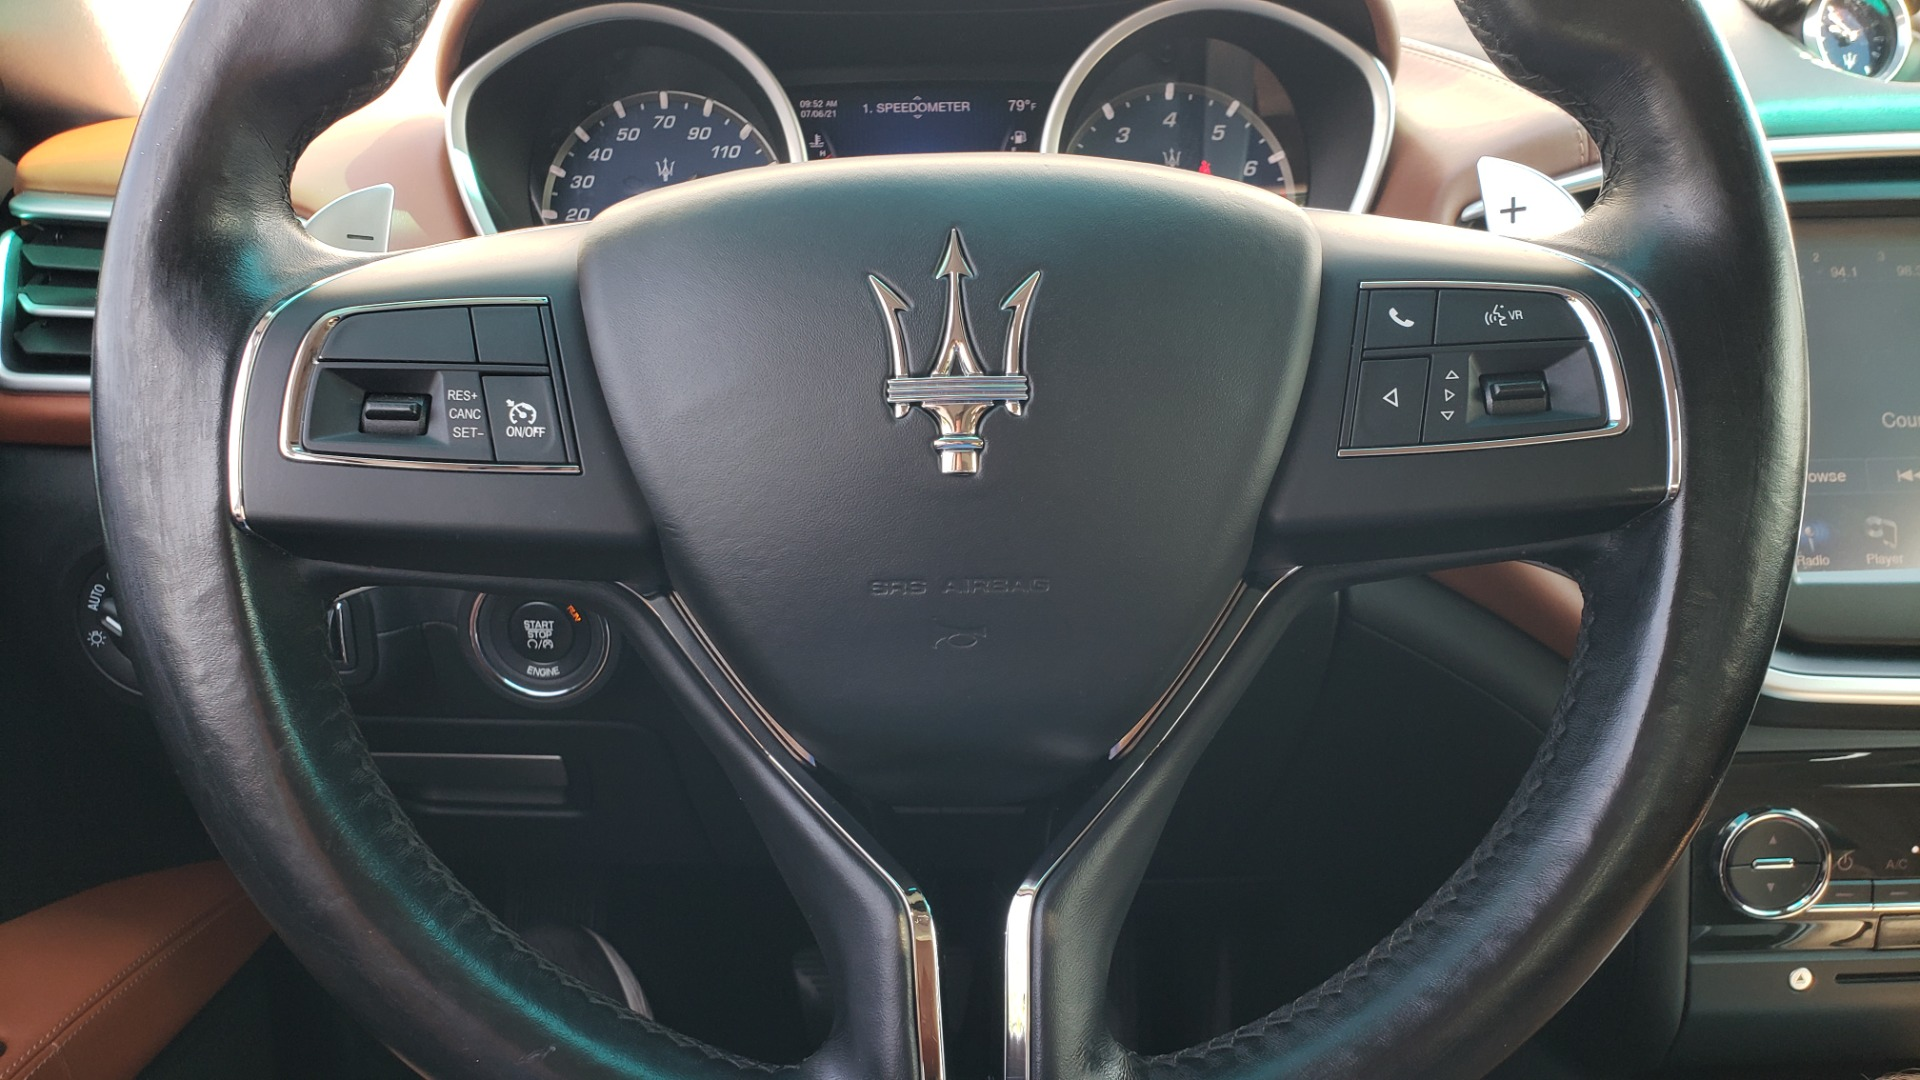 Used 2015 Maserati GHIBLI SEDAN / 3.0L V6 / 8-SPD AUTO / NAV / HTD STS / SUNROOF / REARVIEW for sale $24,495 at Formula Imports in Charlotte NC 28227 44